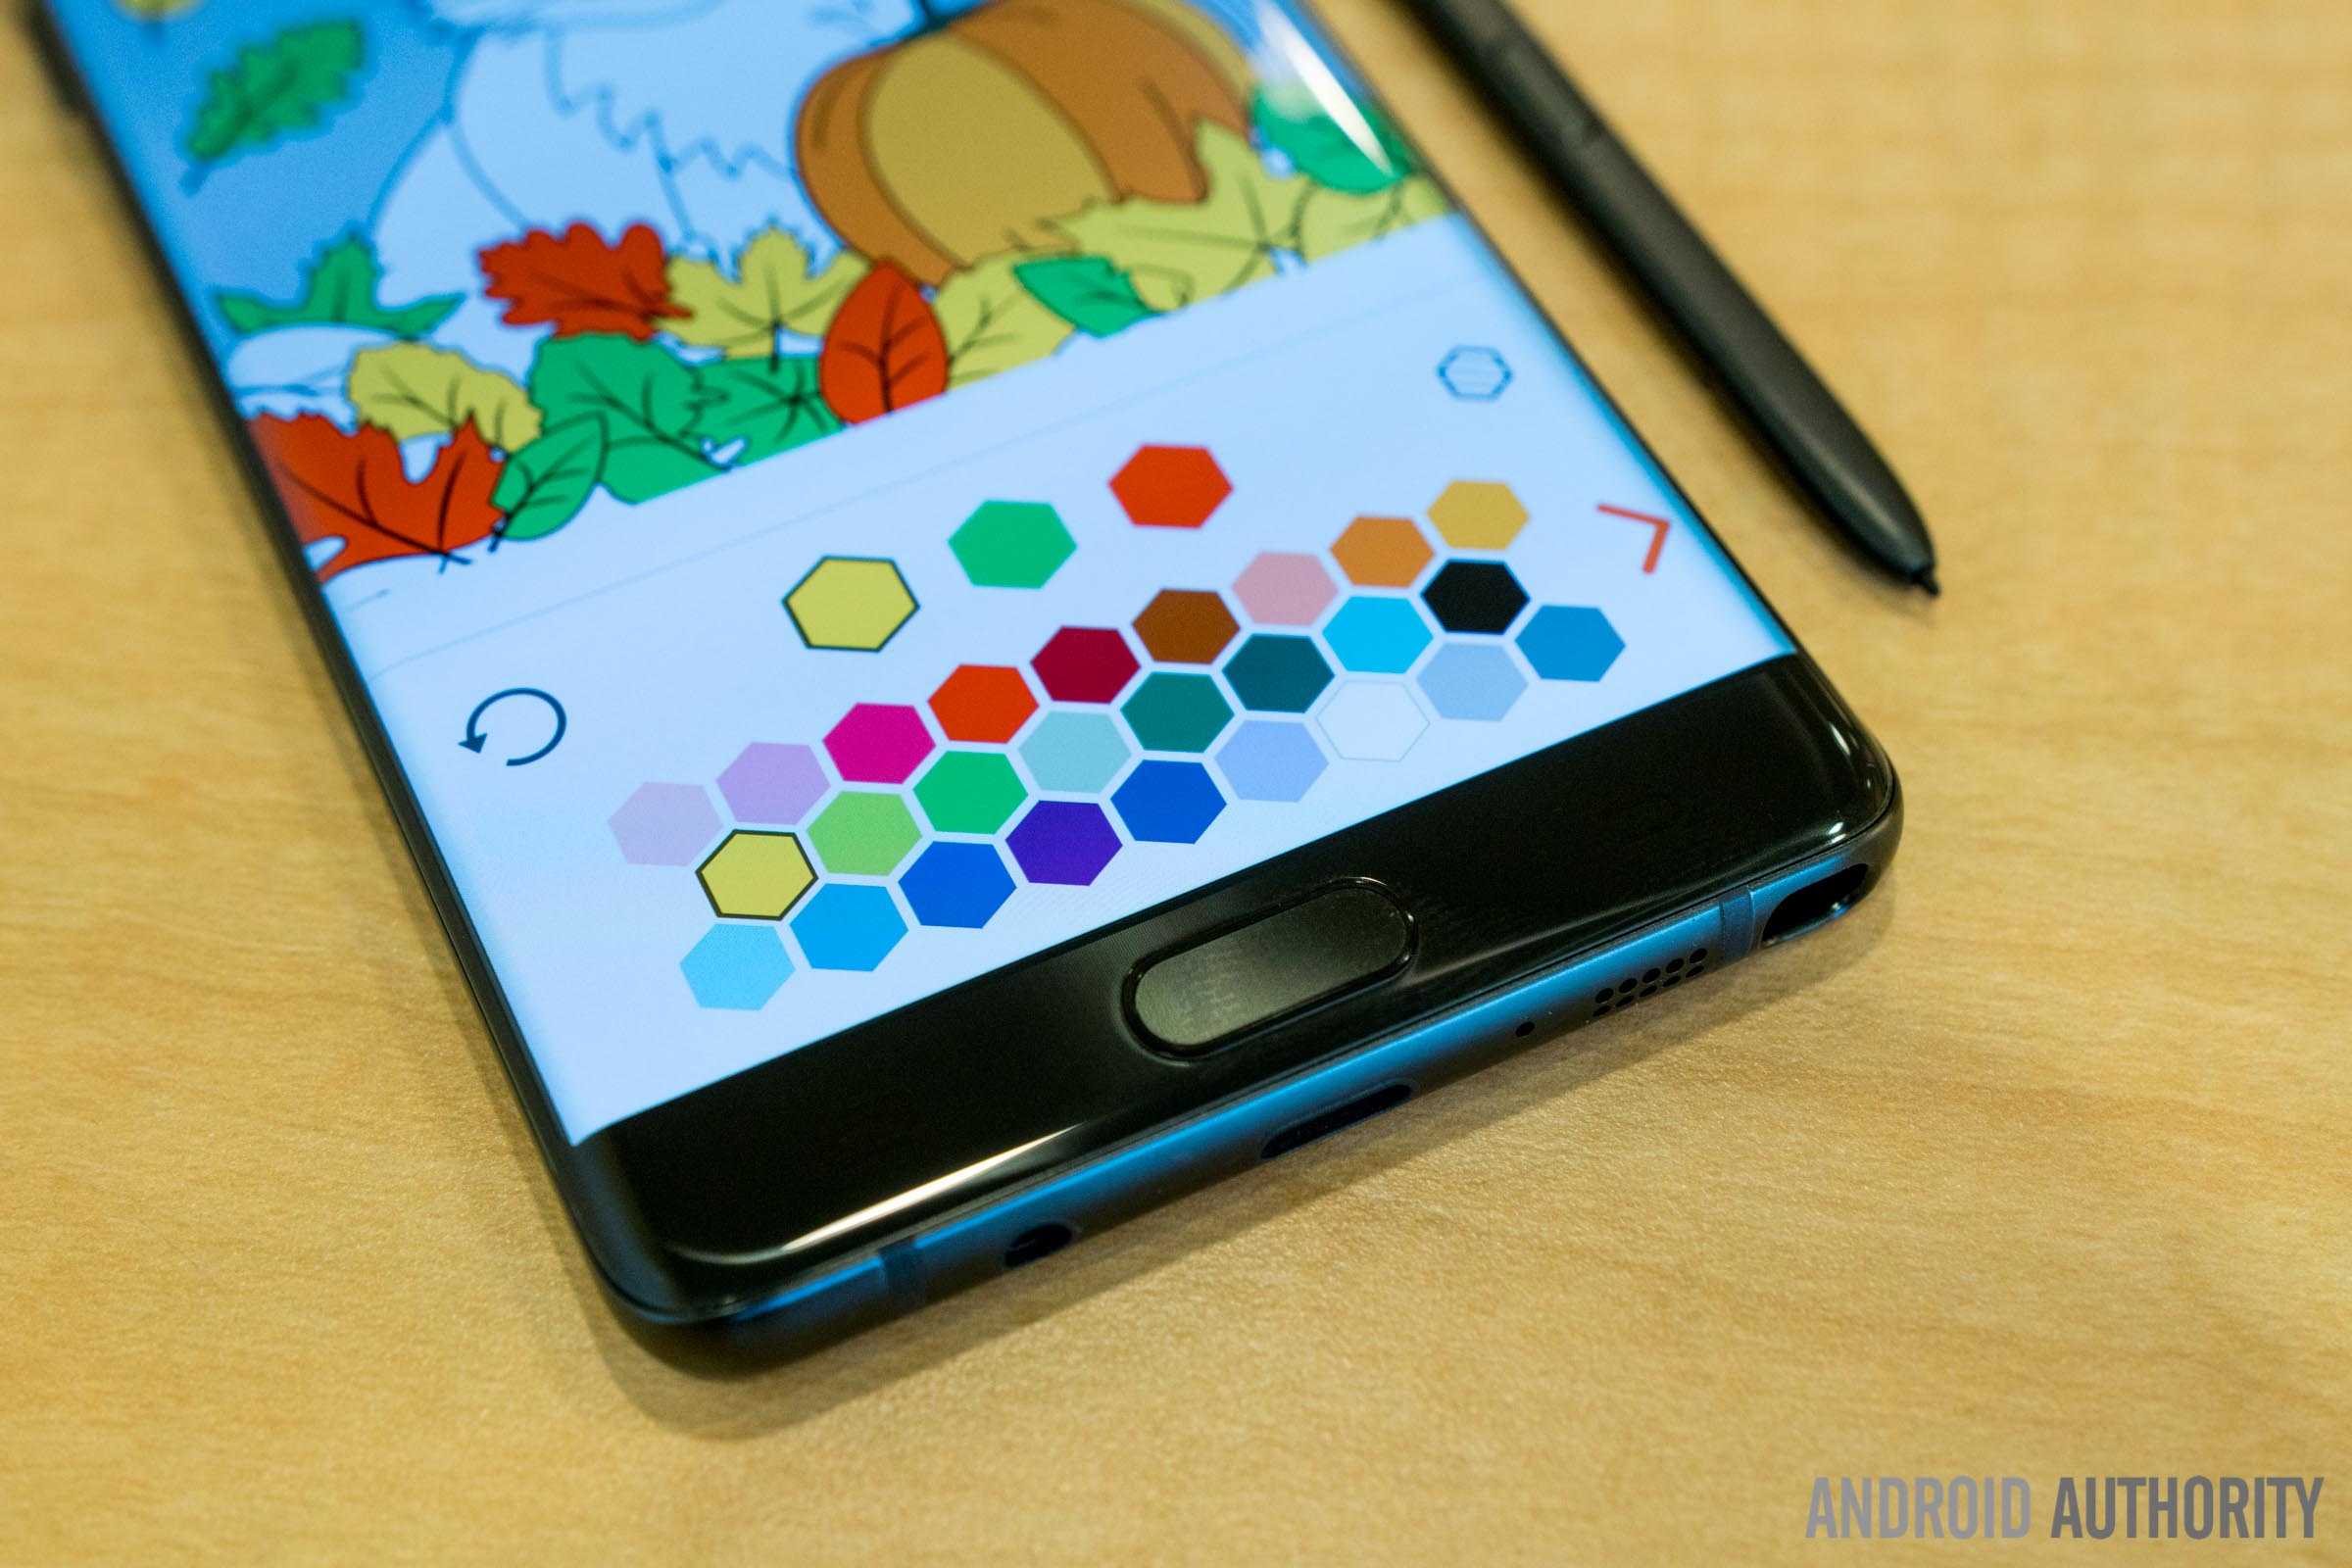 Phone Notebook App For Android Phone 10 best stylus apps and s pen for android authority apps